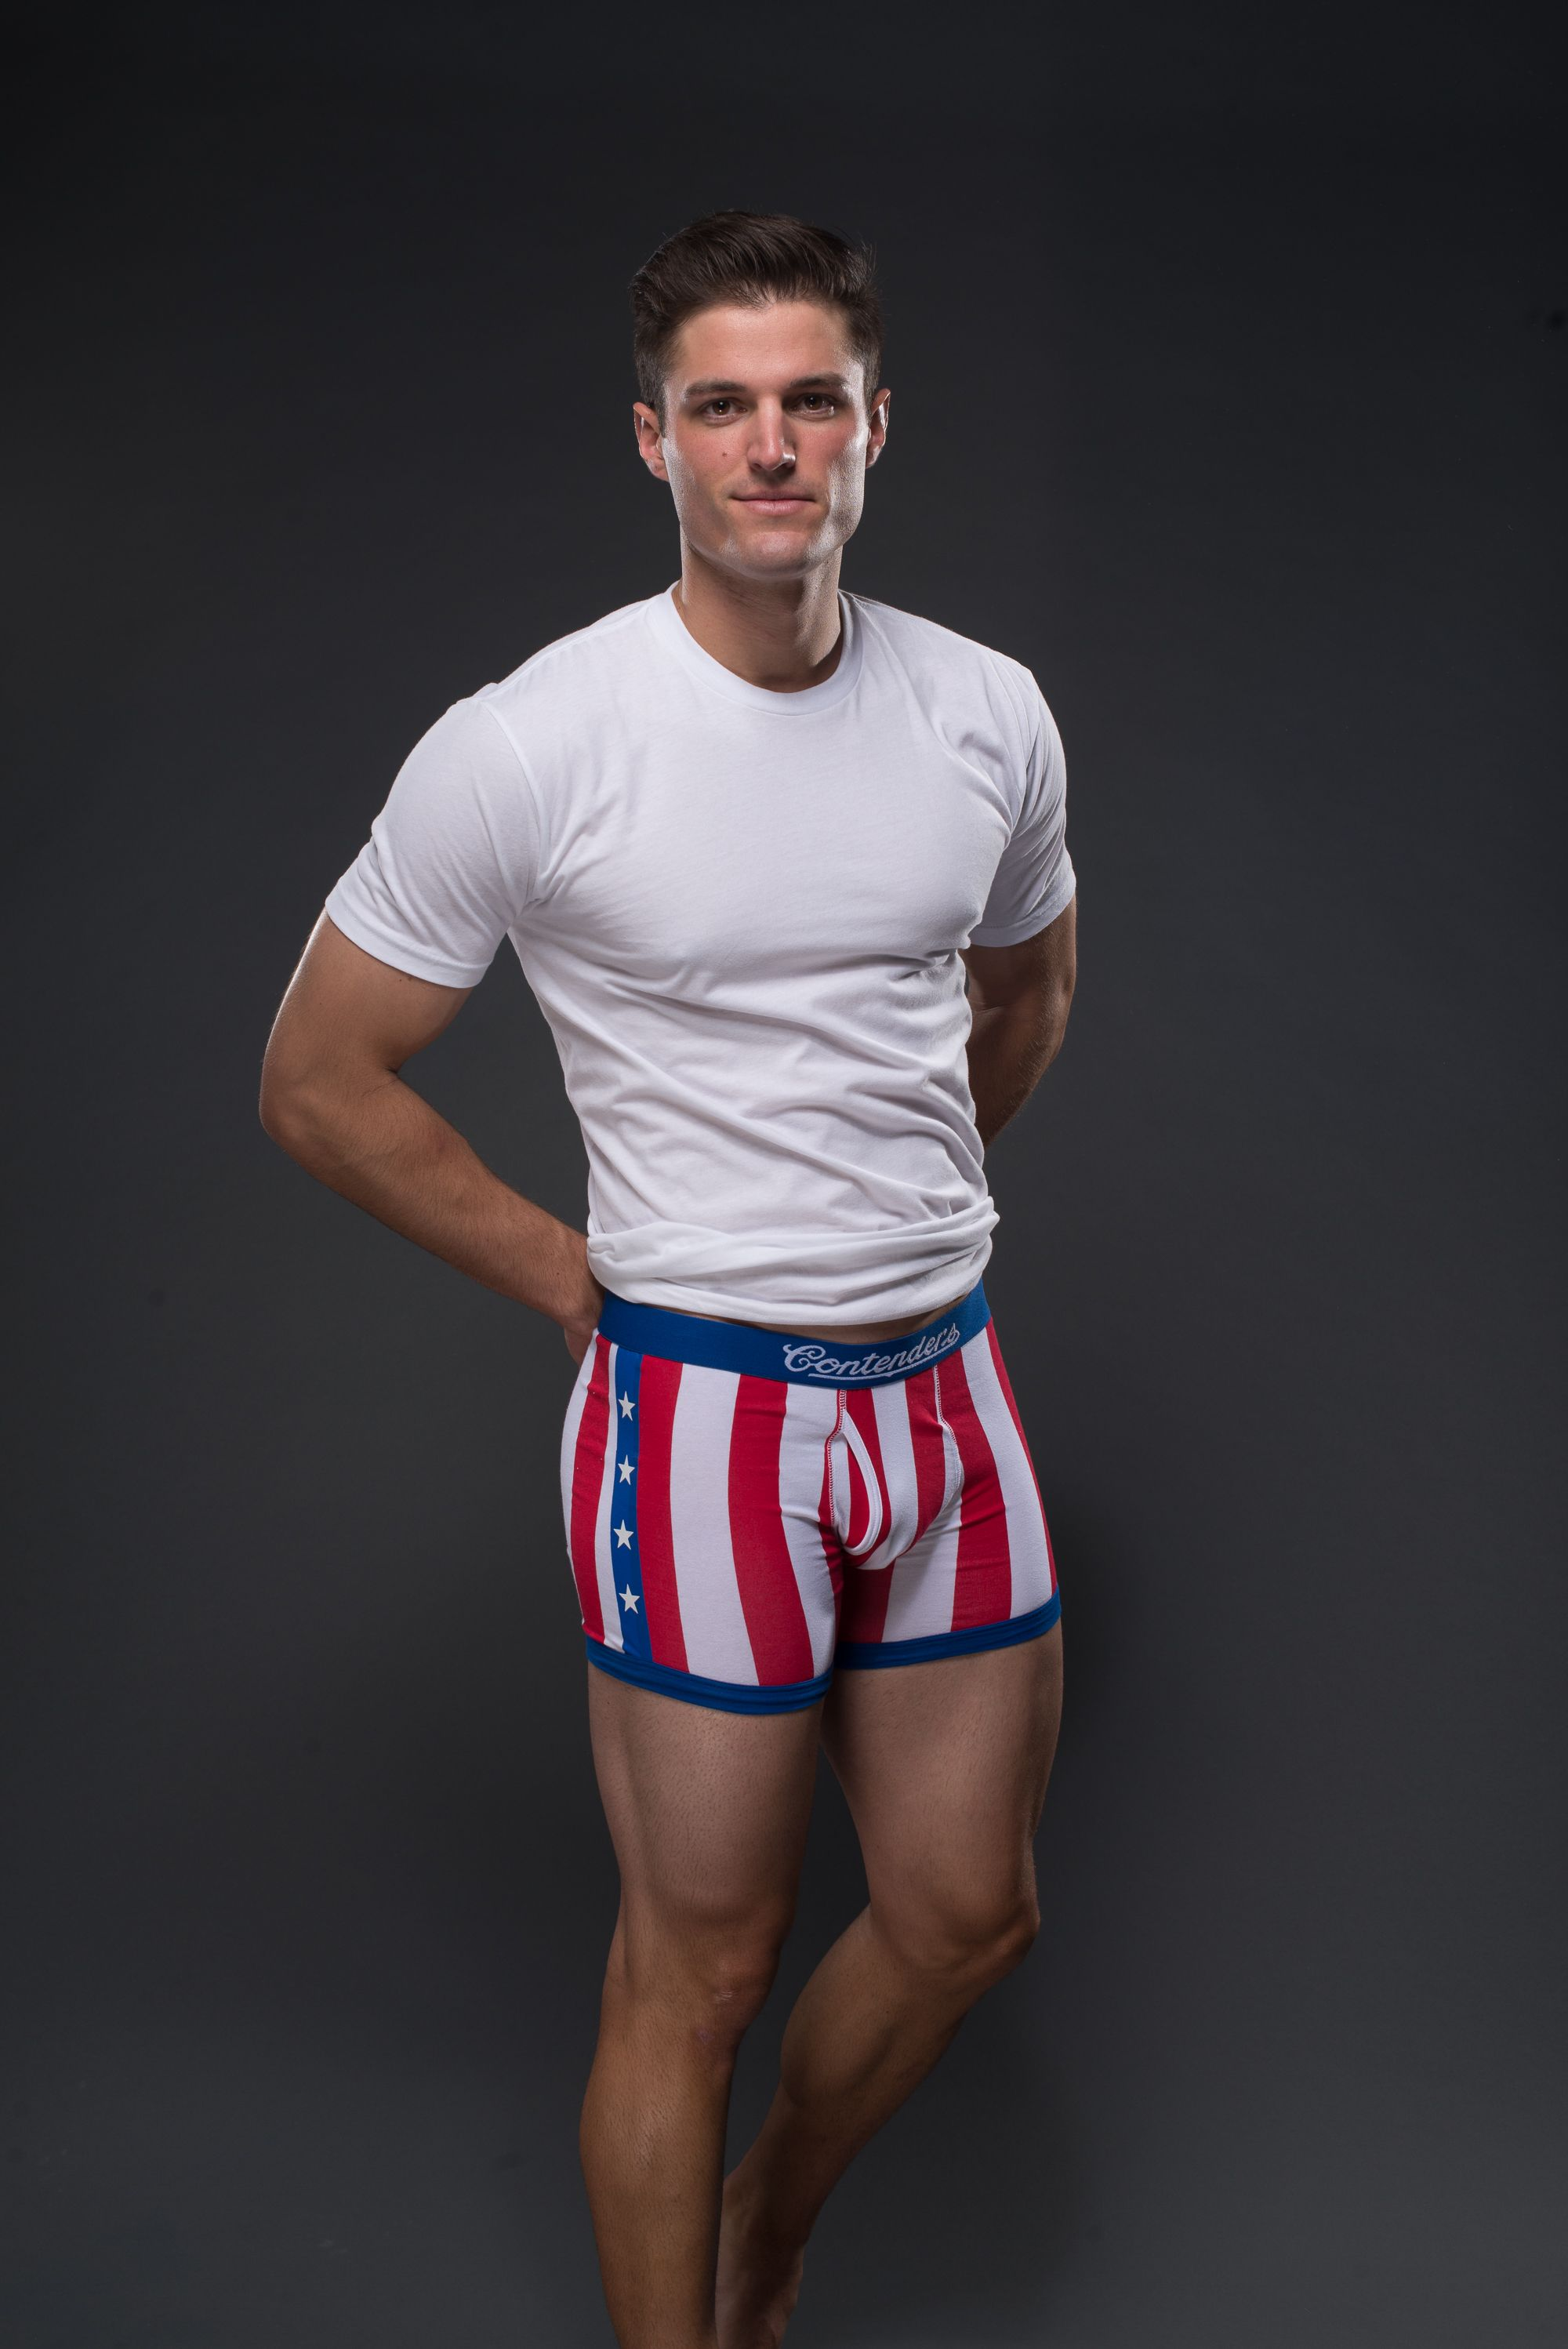 c930f13d52f8 Get the man in your life his favorite boxer briefs and save 20% off your  order with code: YOURMAN. It's the gift that keeps giving.